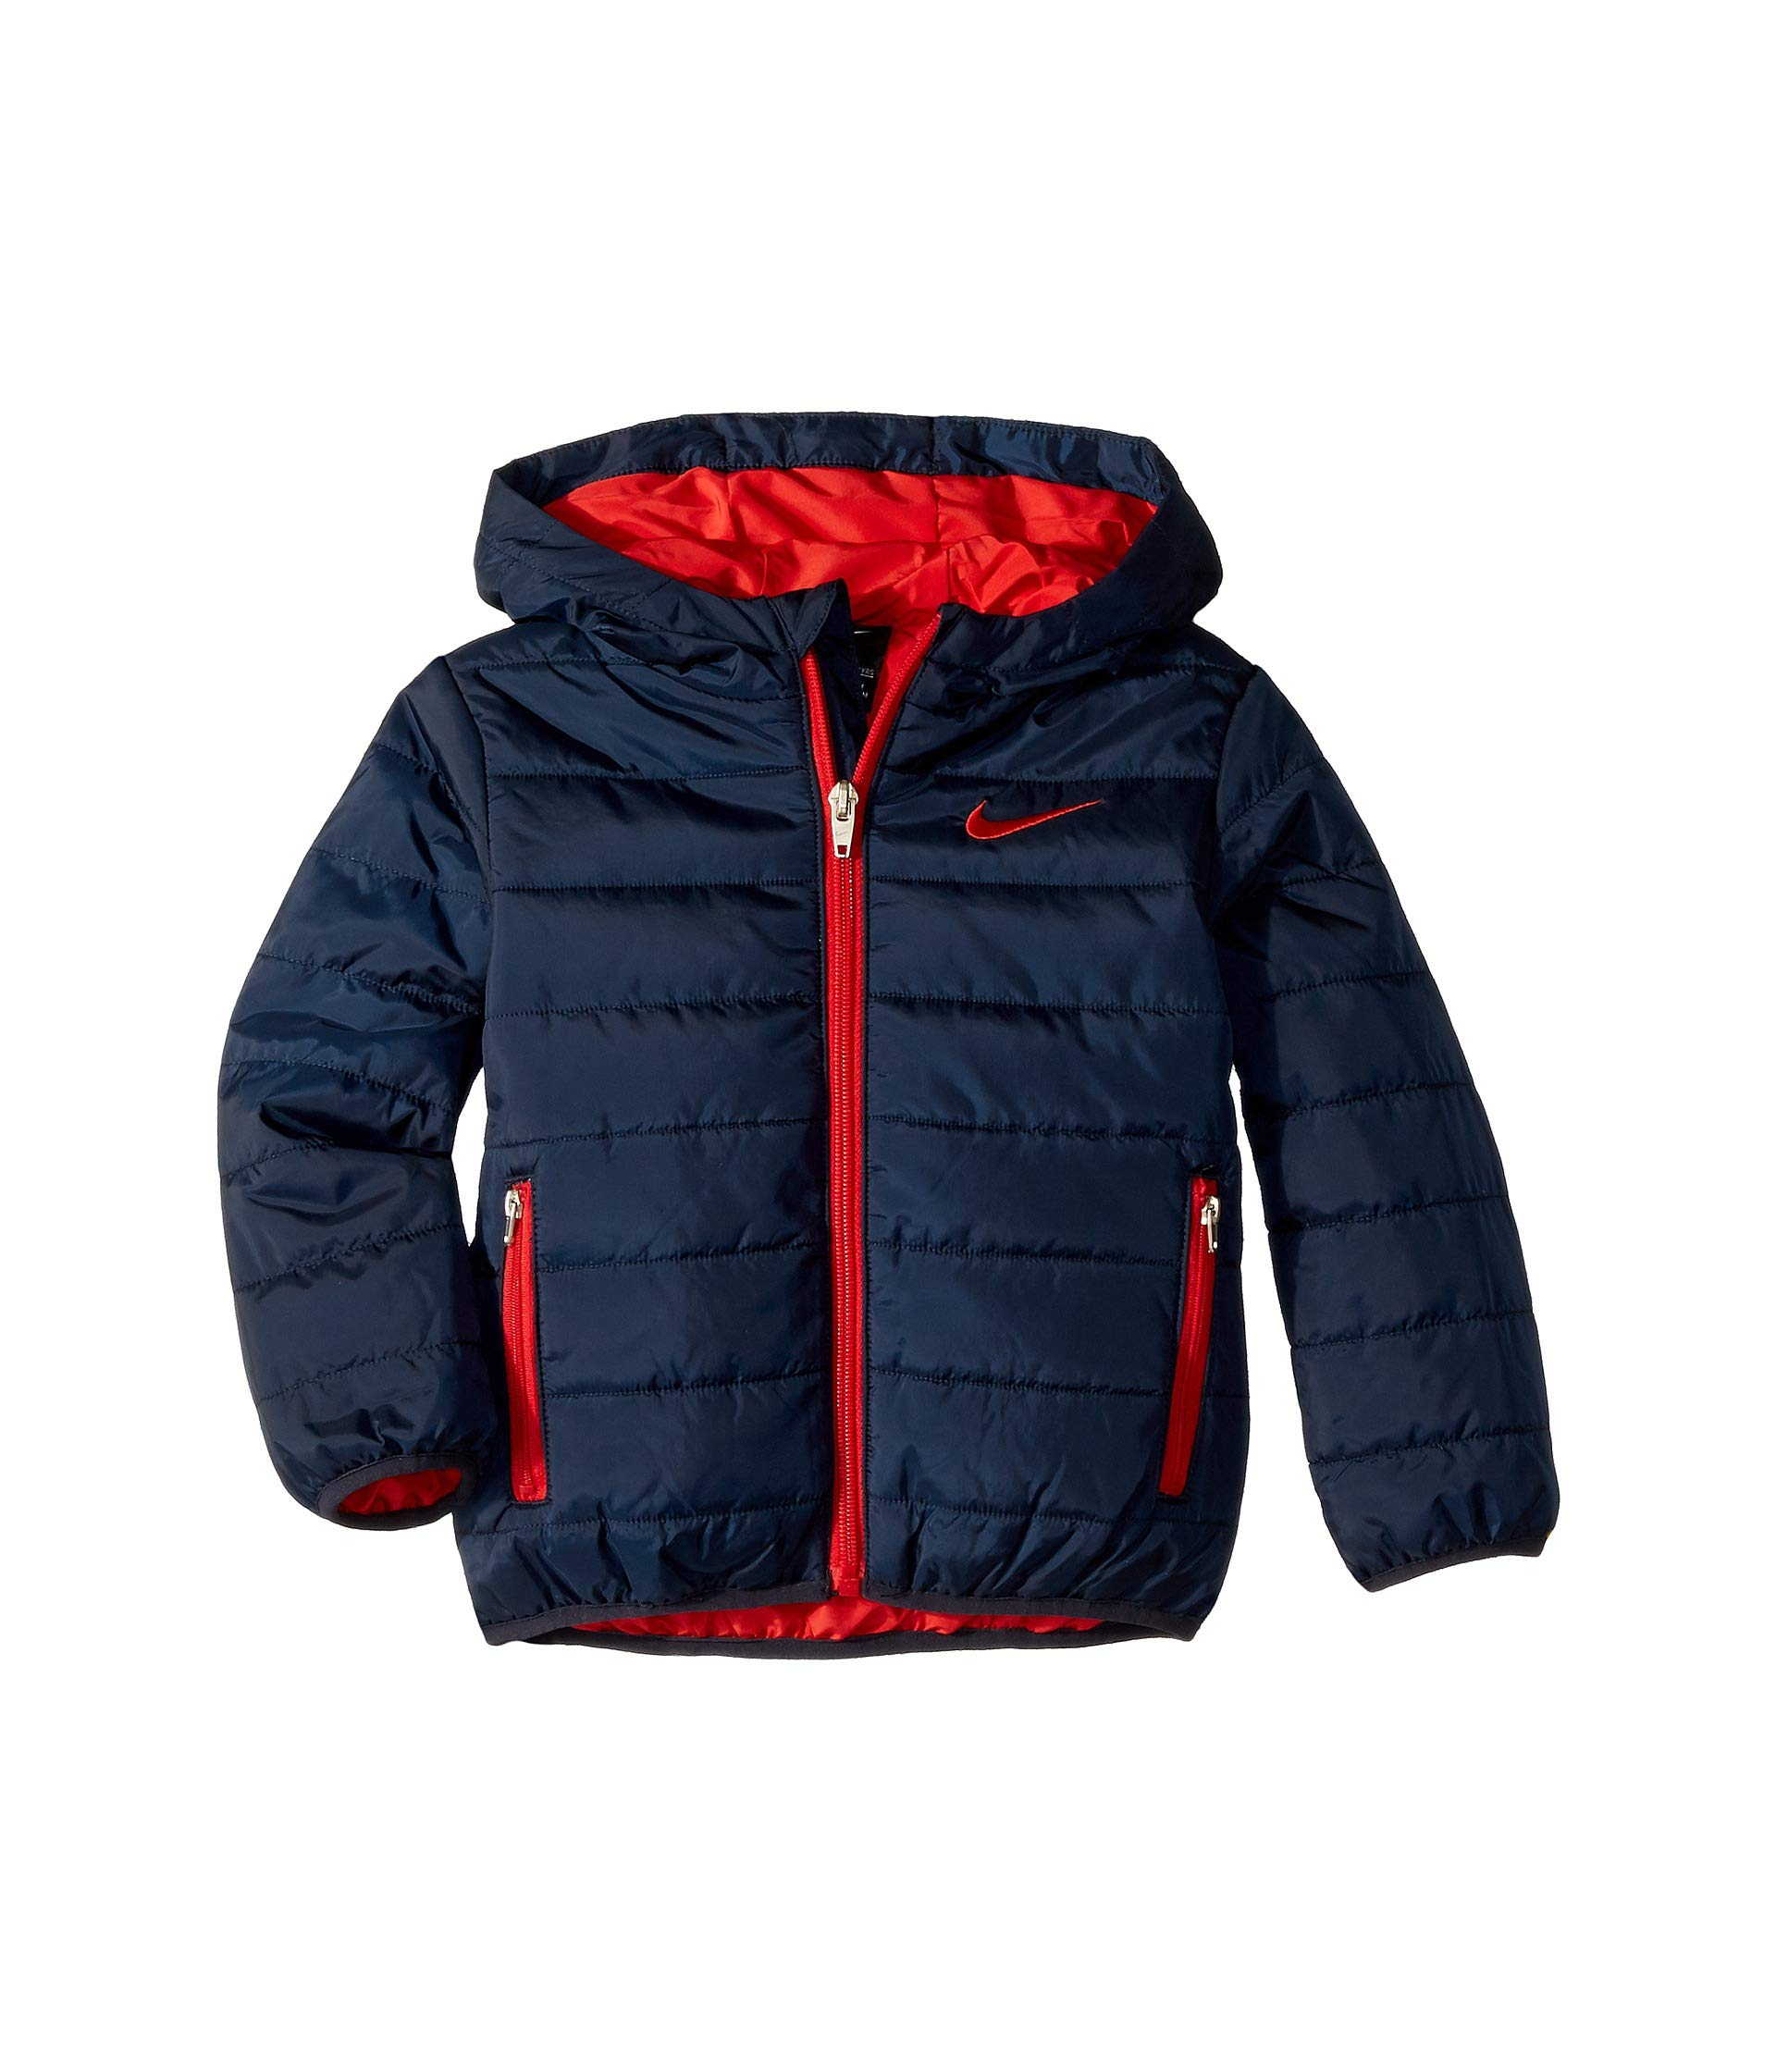 Nike Kids Baby Boy's Quilted Jacket (Toddler) Obsidian/University Red 4T